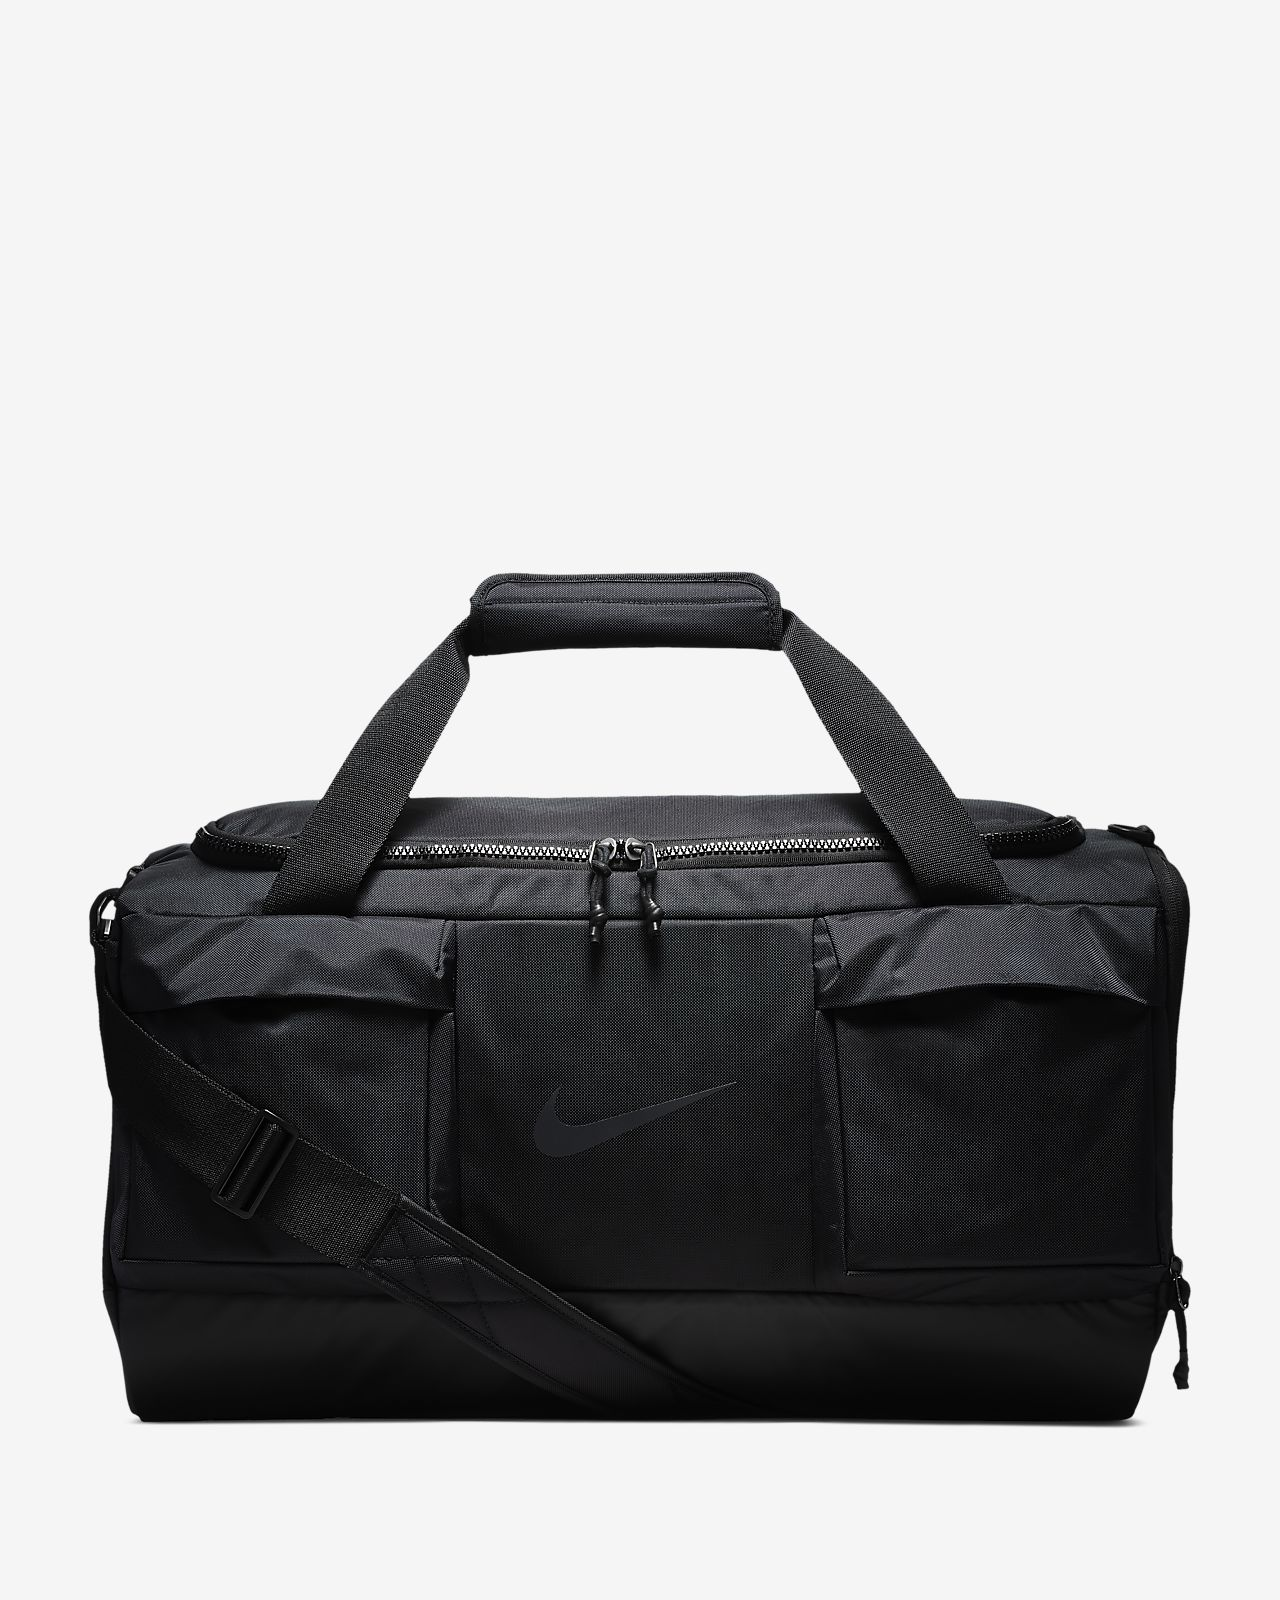 Nike Vapor Power Men s Training Duffel Bag (Medium). Nike.com GB 107e8606bb6f9